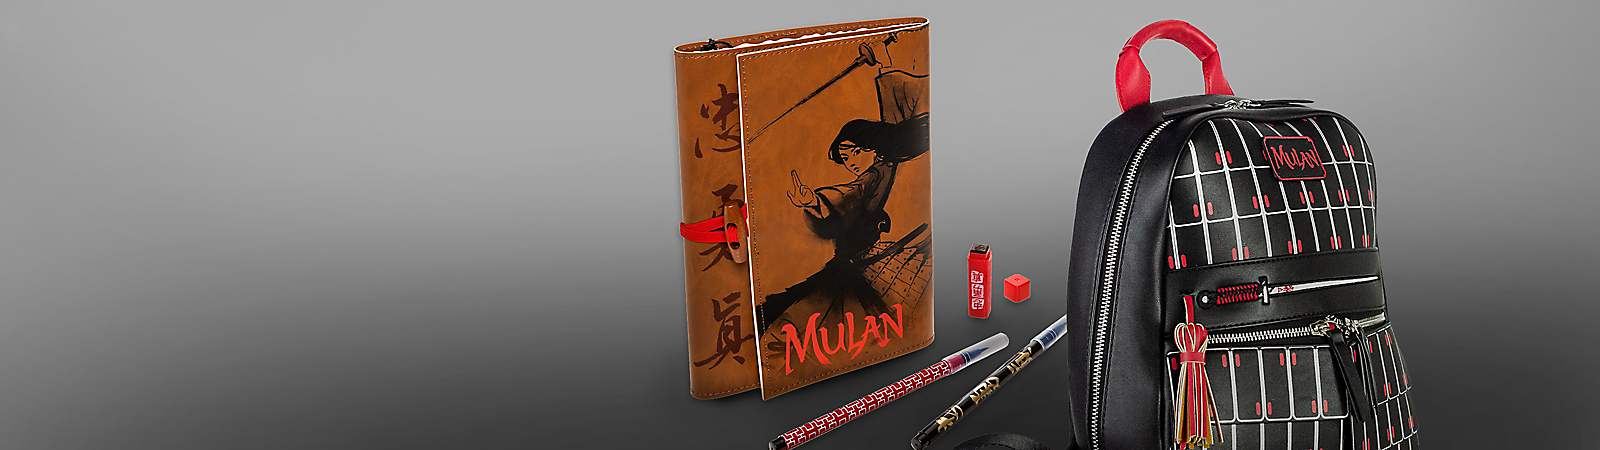 Mulan journal and Mulan Backpack